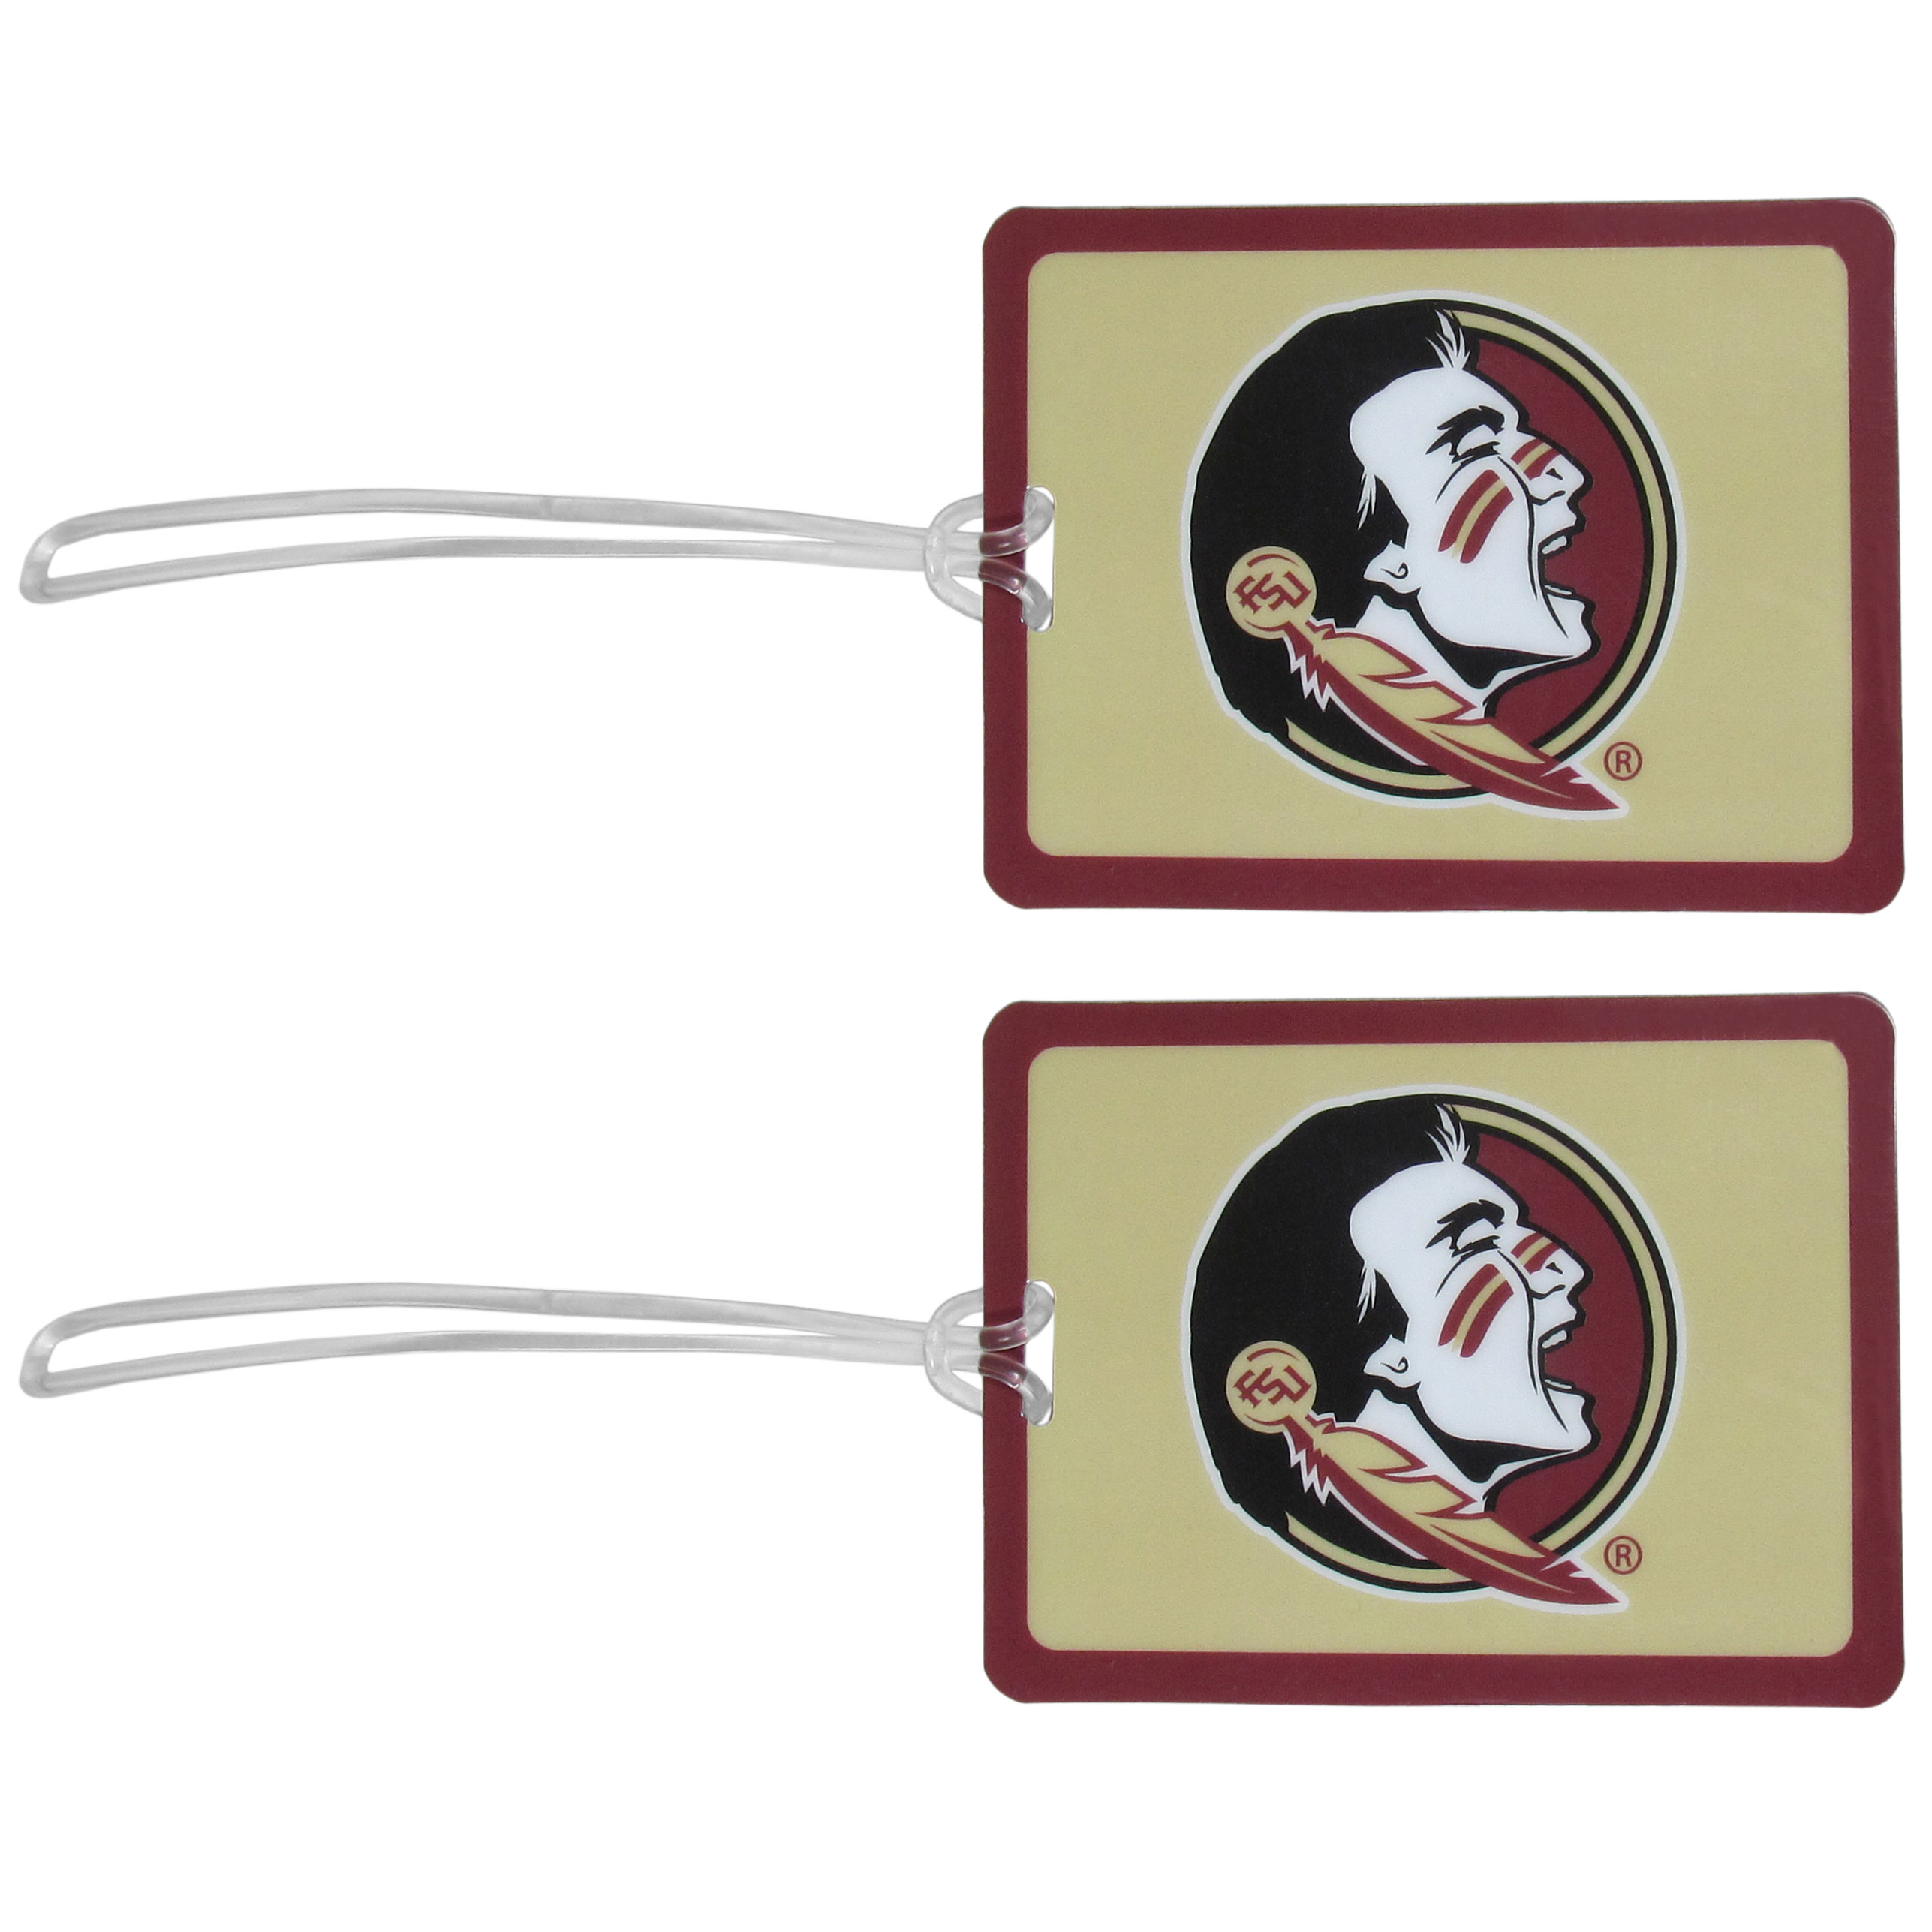 Florida St. Seminoles Vinyl Luggage Tag, 2pk - Tired of trying to spot your suitcase or bag in a sea of luggage? Try our large and colorful Florida St. Seminoles luggage tags. The tag is 4x3 inches and has a 5 inch cord to attach it easily to your bags, backpacks or luggage. The front of the tag features the team logo in a bright, team colored background and you can write you name, address and phone number on the back of the tag.